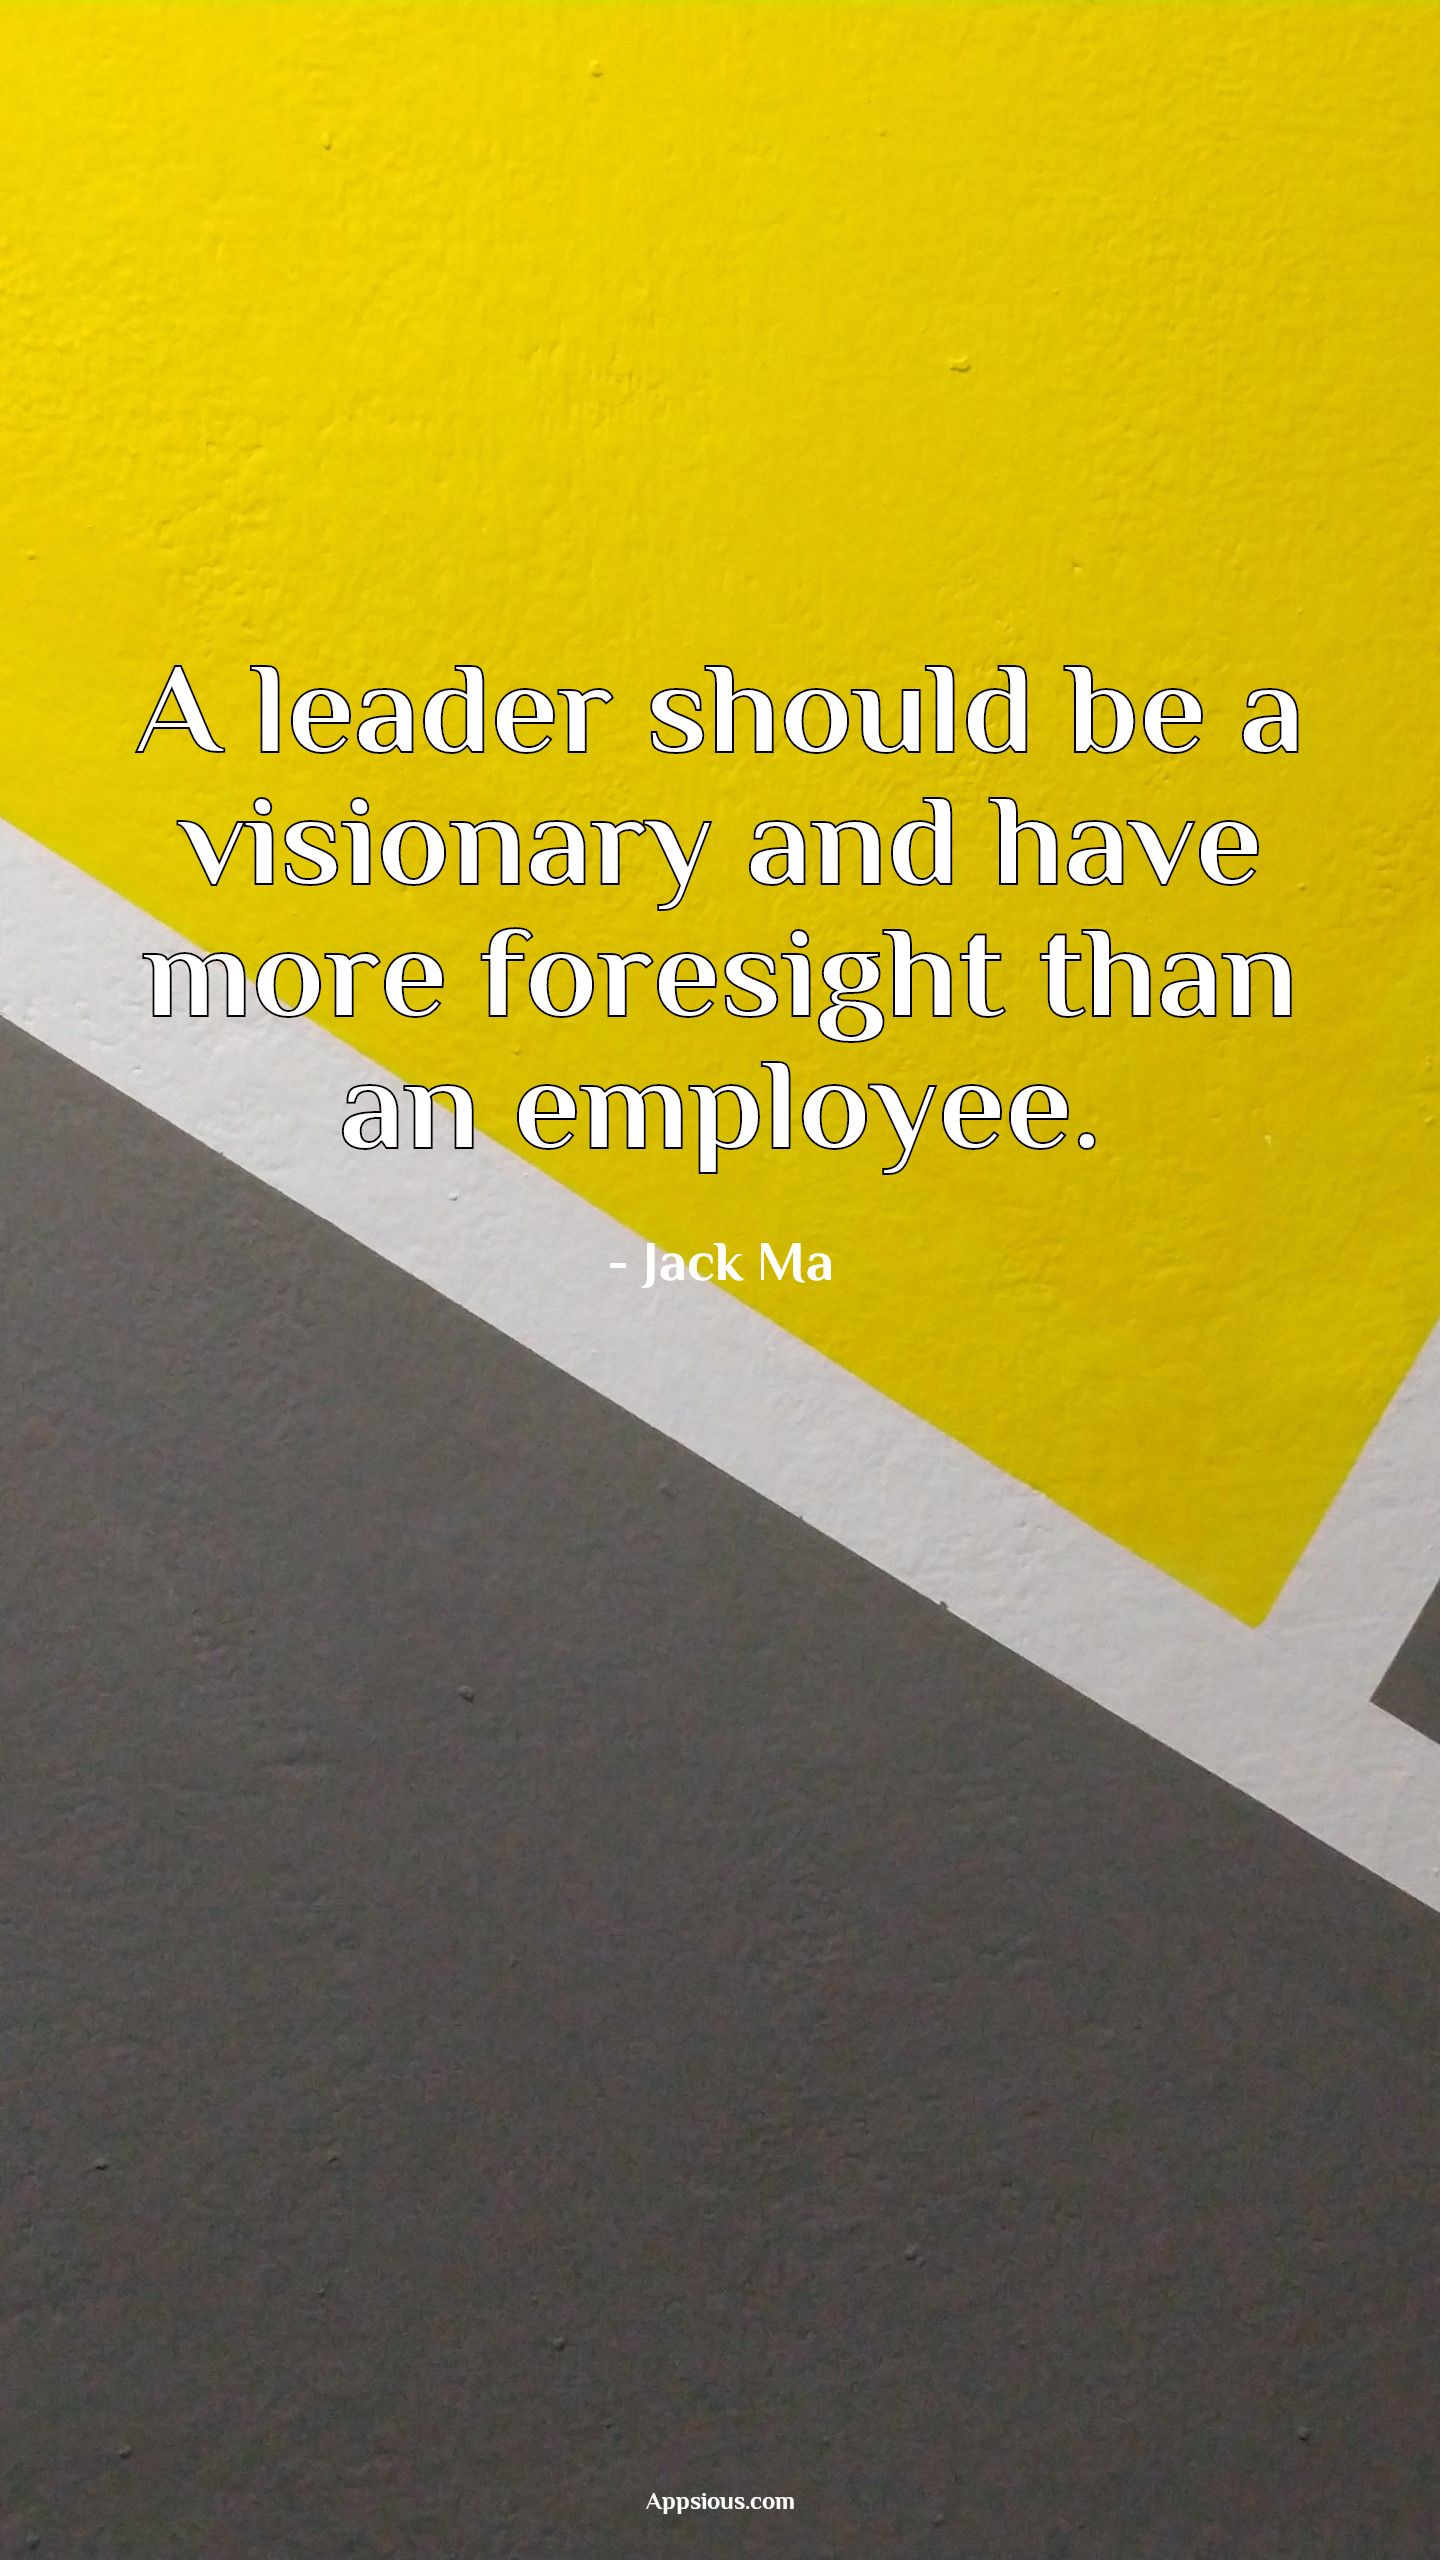 A leader should be a visionary and have more foresight than an employee.